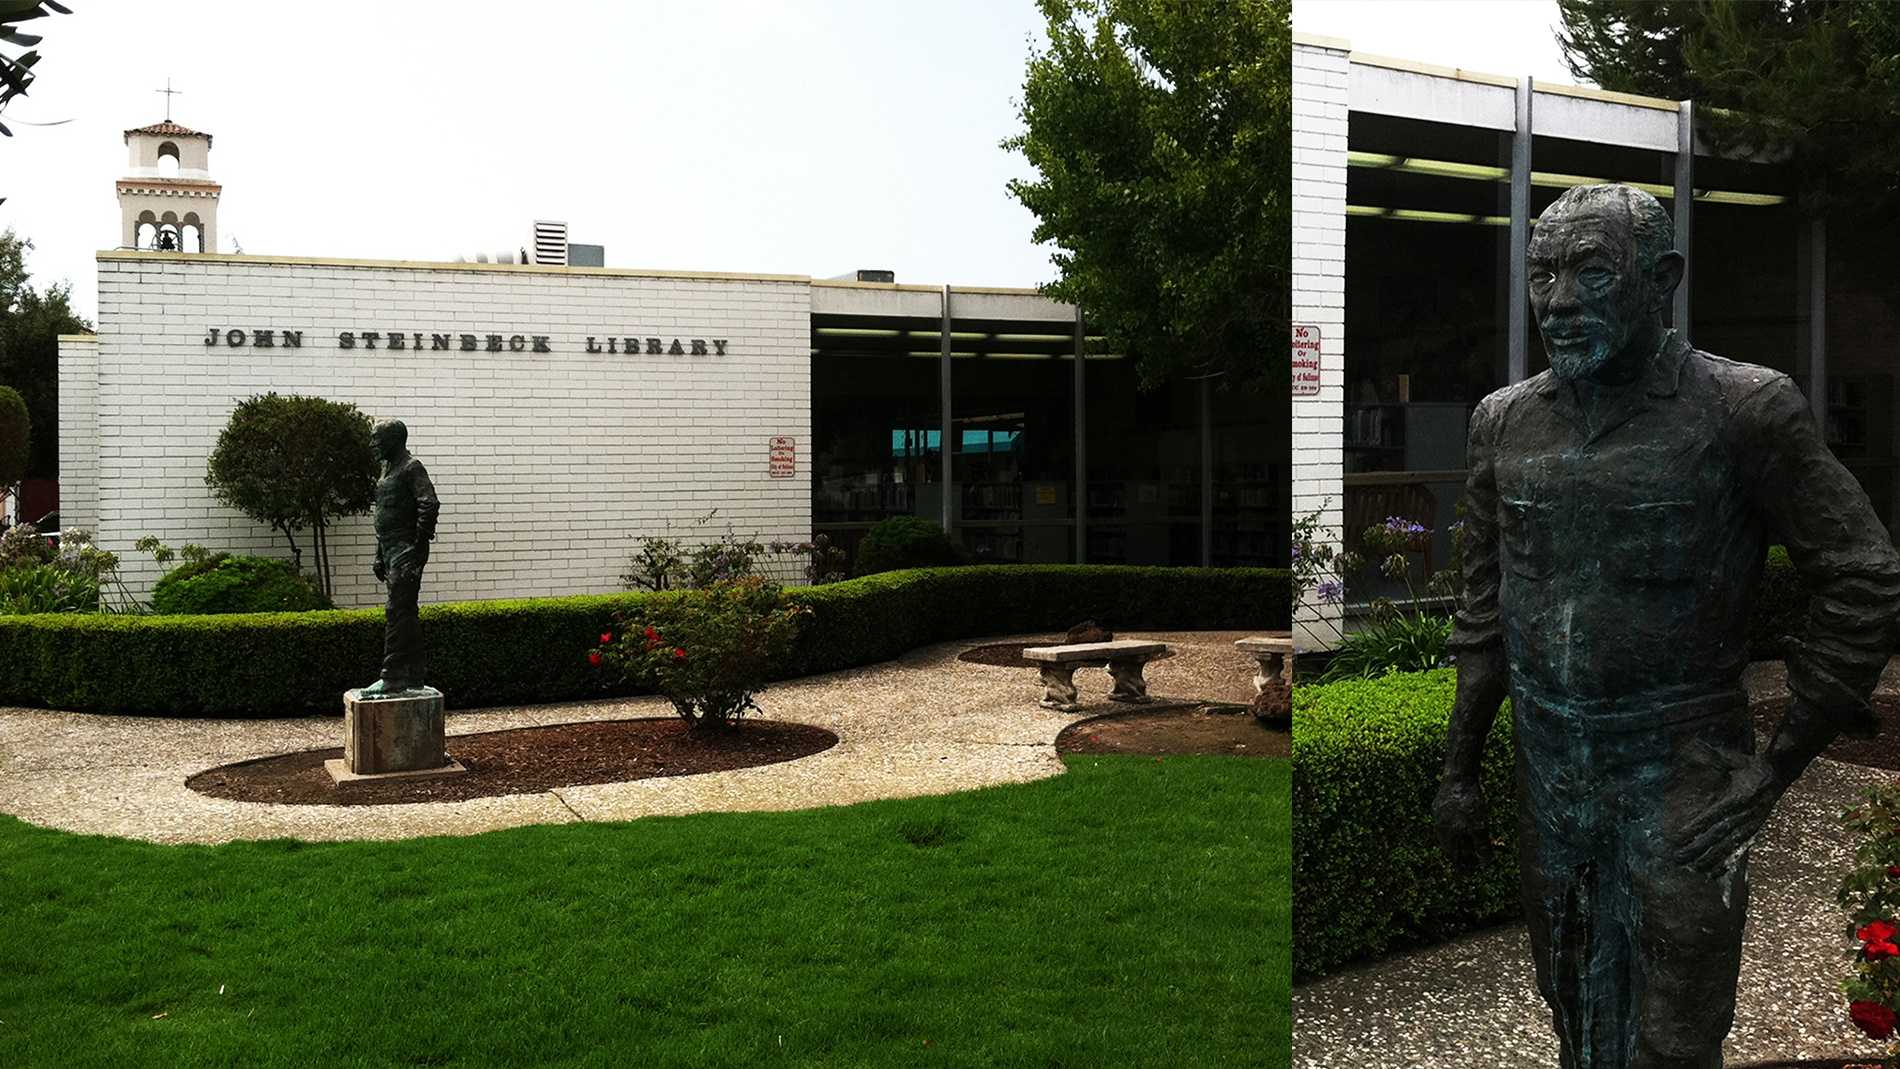 John Steinbeck Library in Salinas